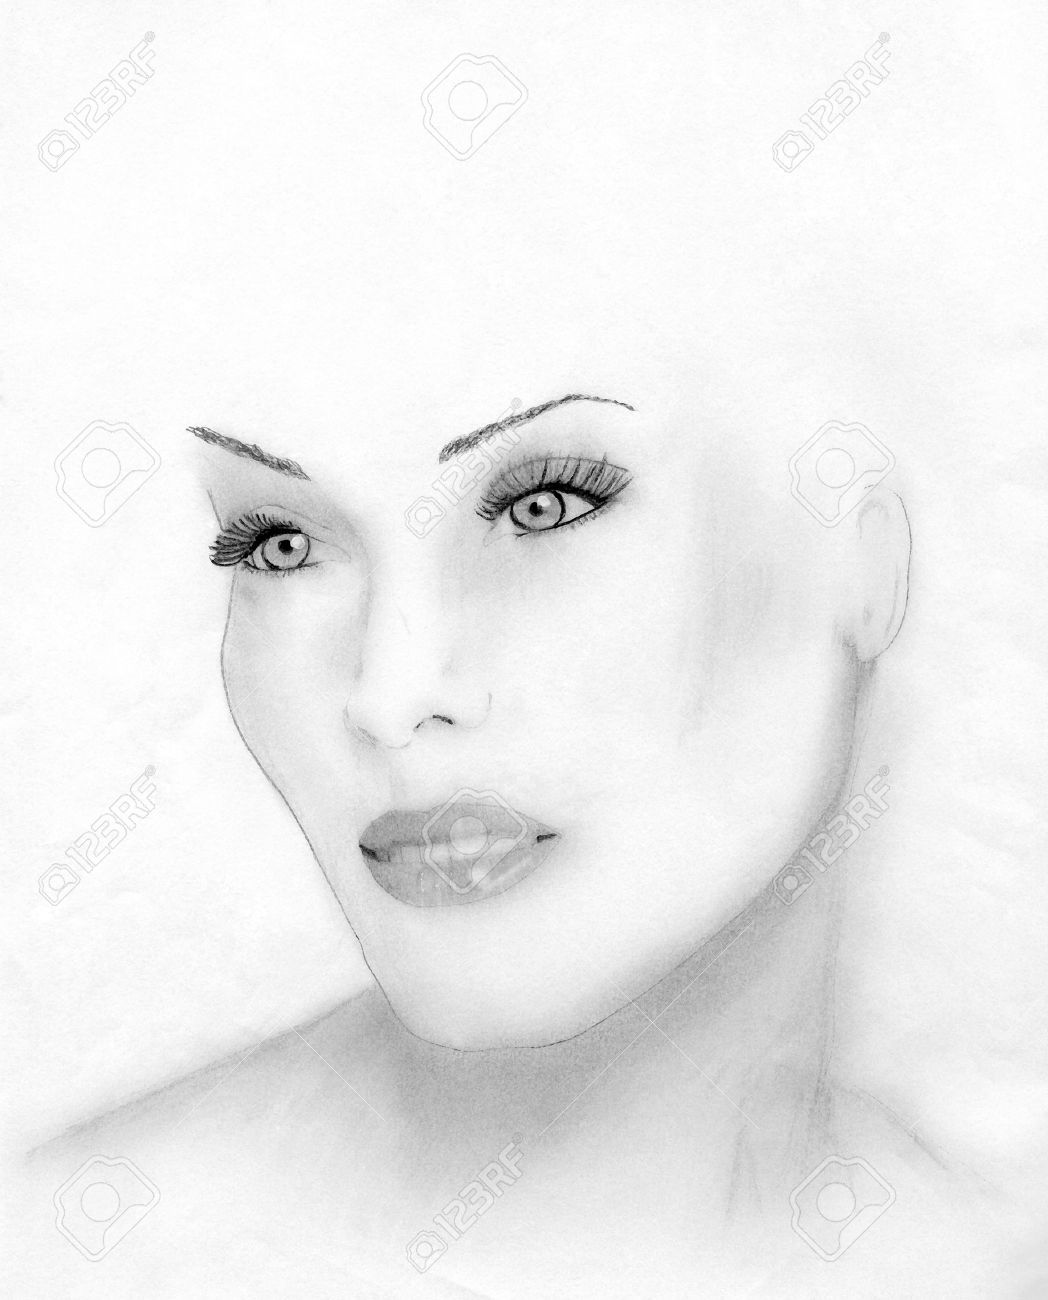 Hand drawn pencil sketch of the face of a beautiful woman stock photo 1415500